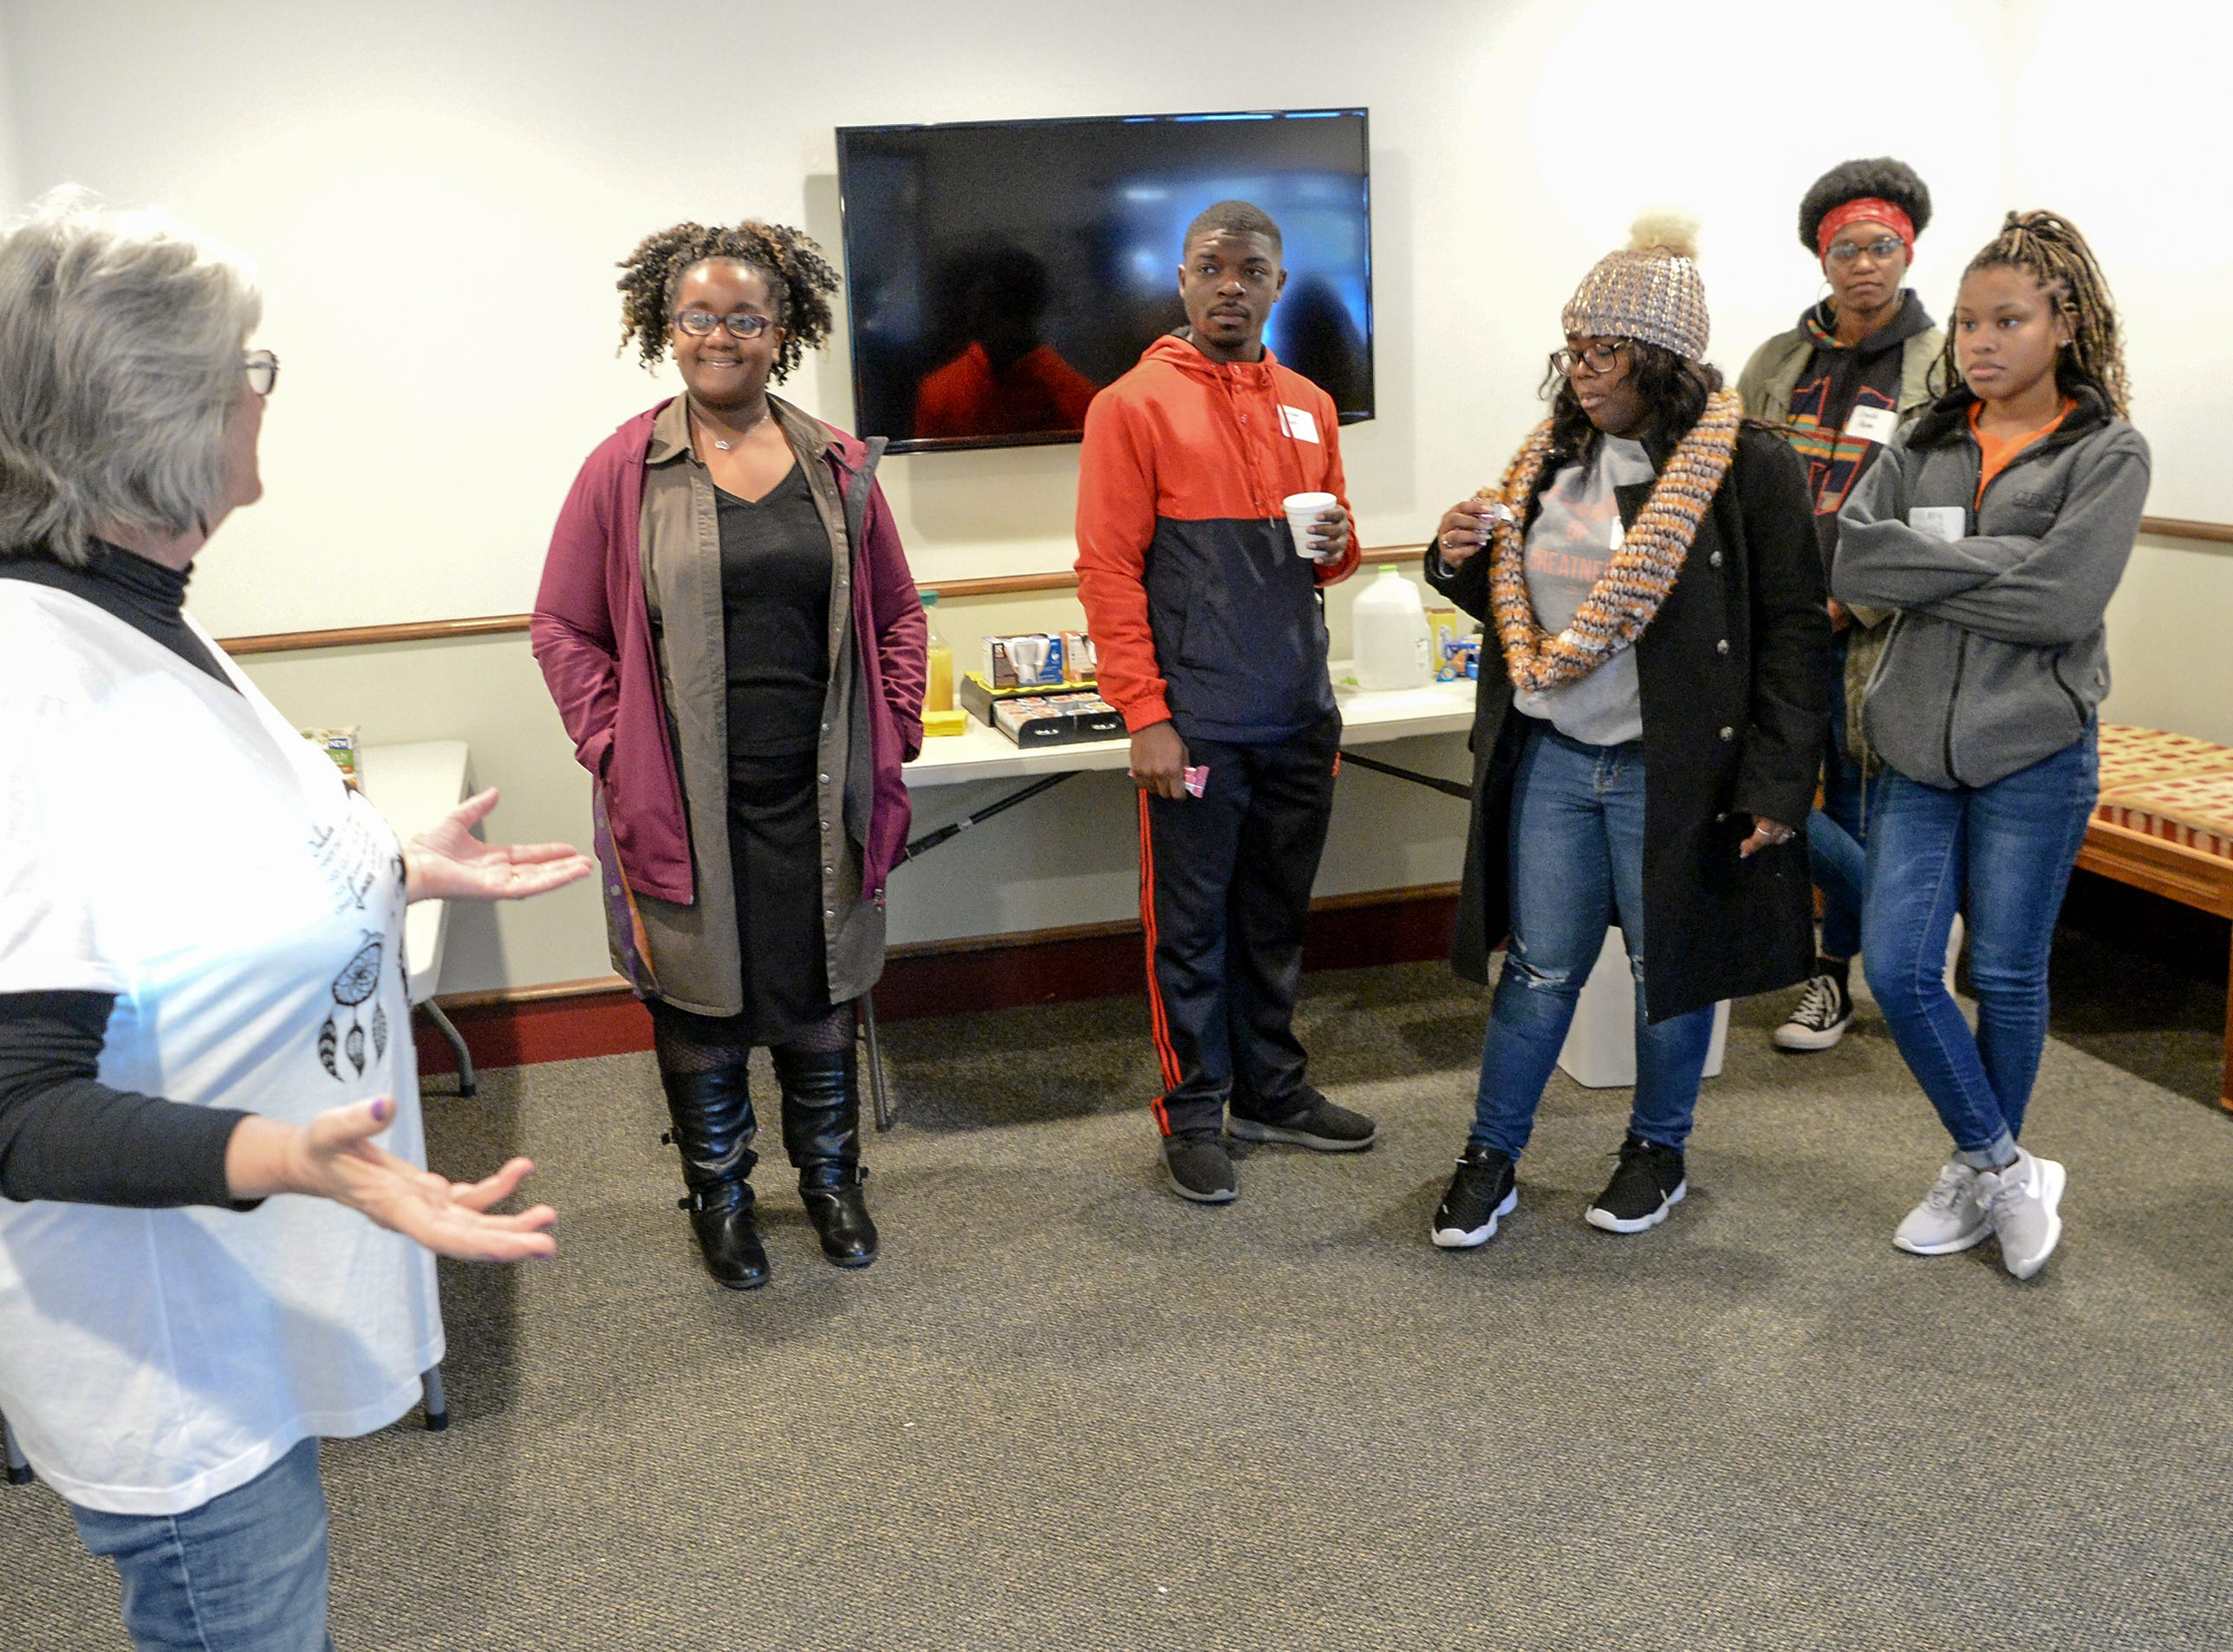 Linda Lavold, Clemson Little Theatre office manager, talks with Clemson University Gospel Choir members before they helped organize and clean during the Clemson University Martin Luther King, Jr. Service Day in Clemson January 21, 2019.